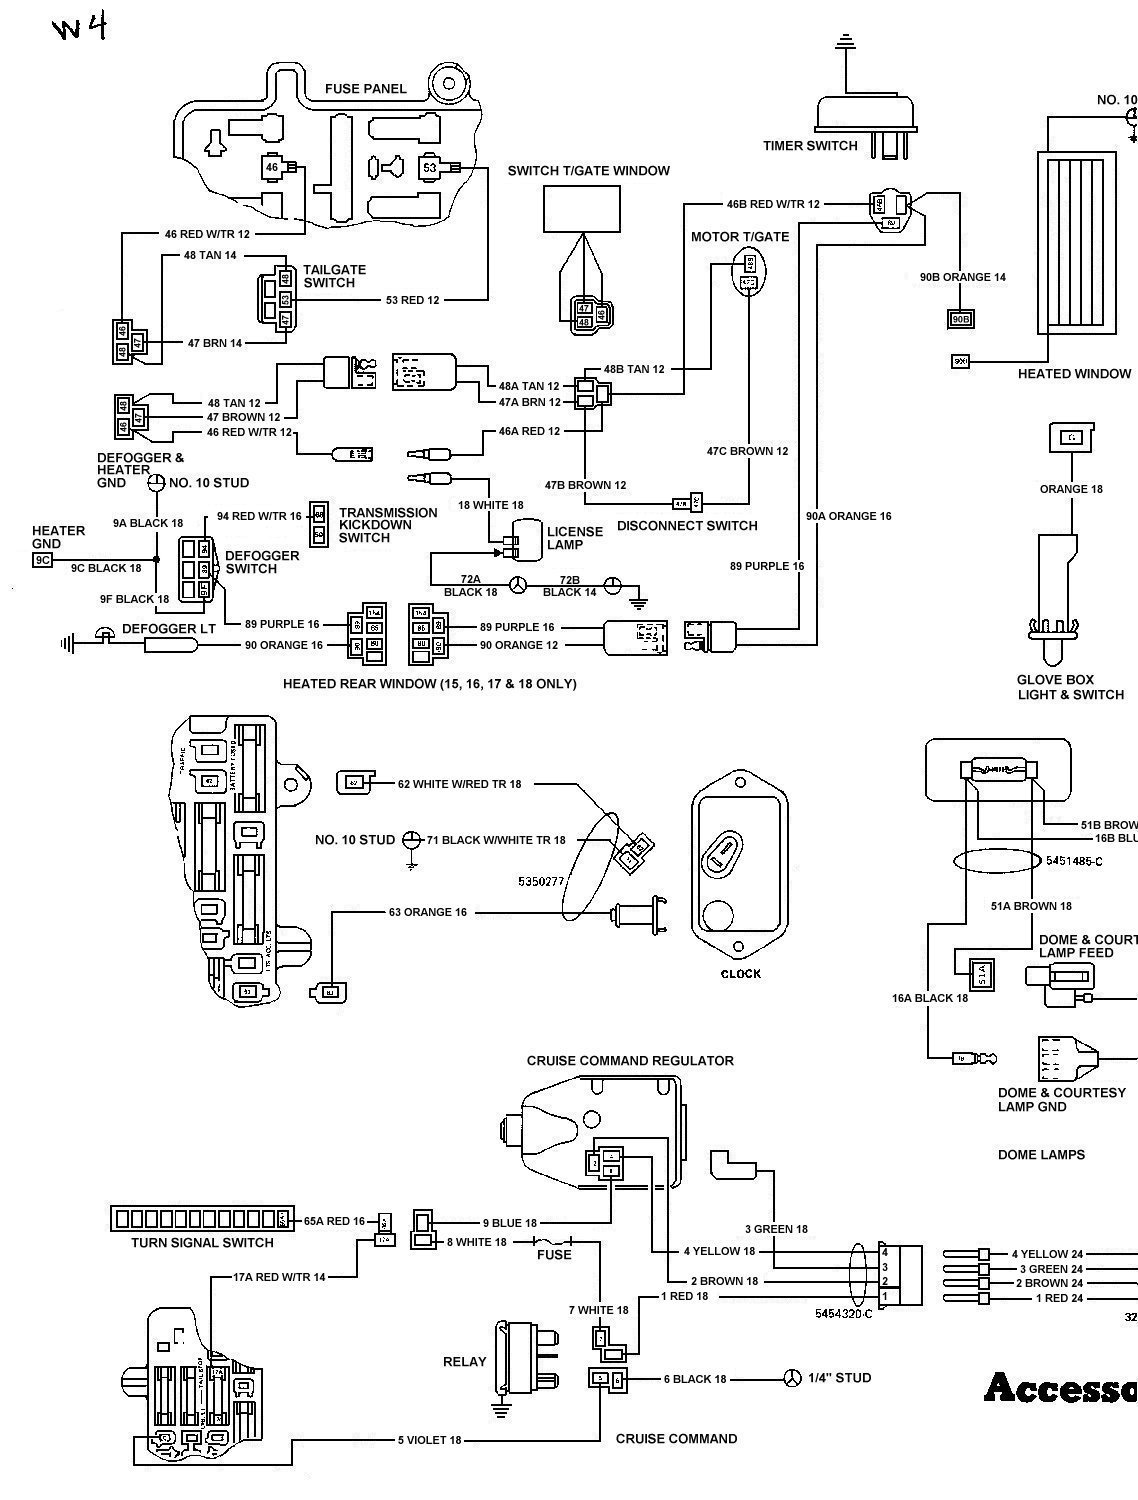 hight resolution of jeep j10 wiring wiring diagram todays jeep j10 wiring schematics jeep j10 wiring